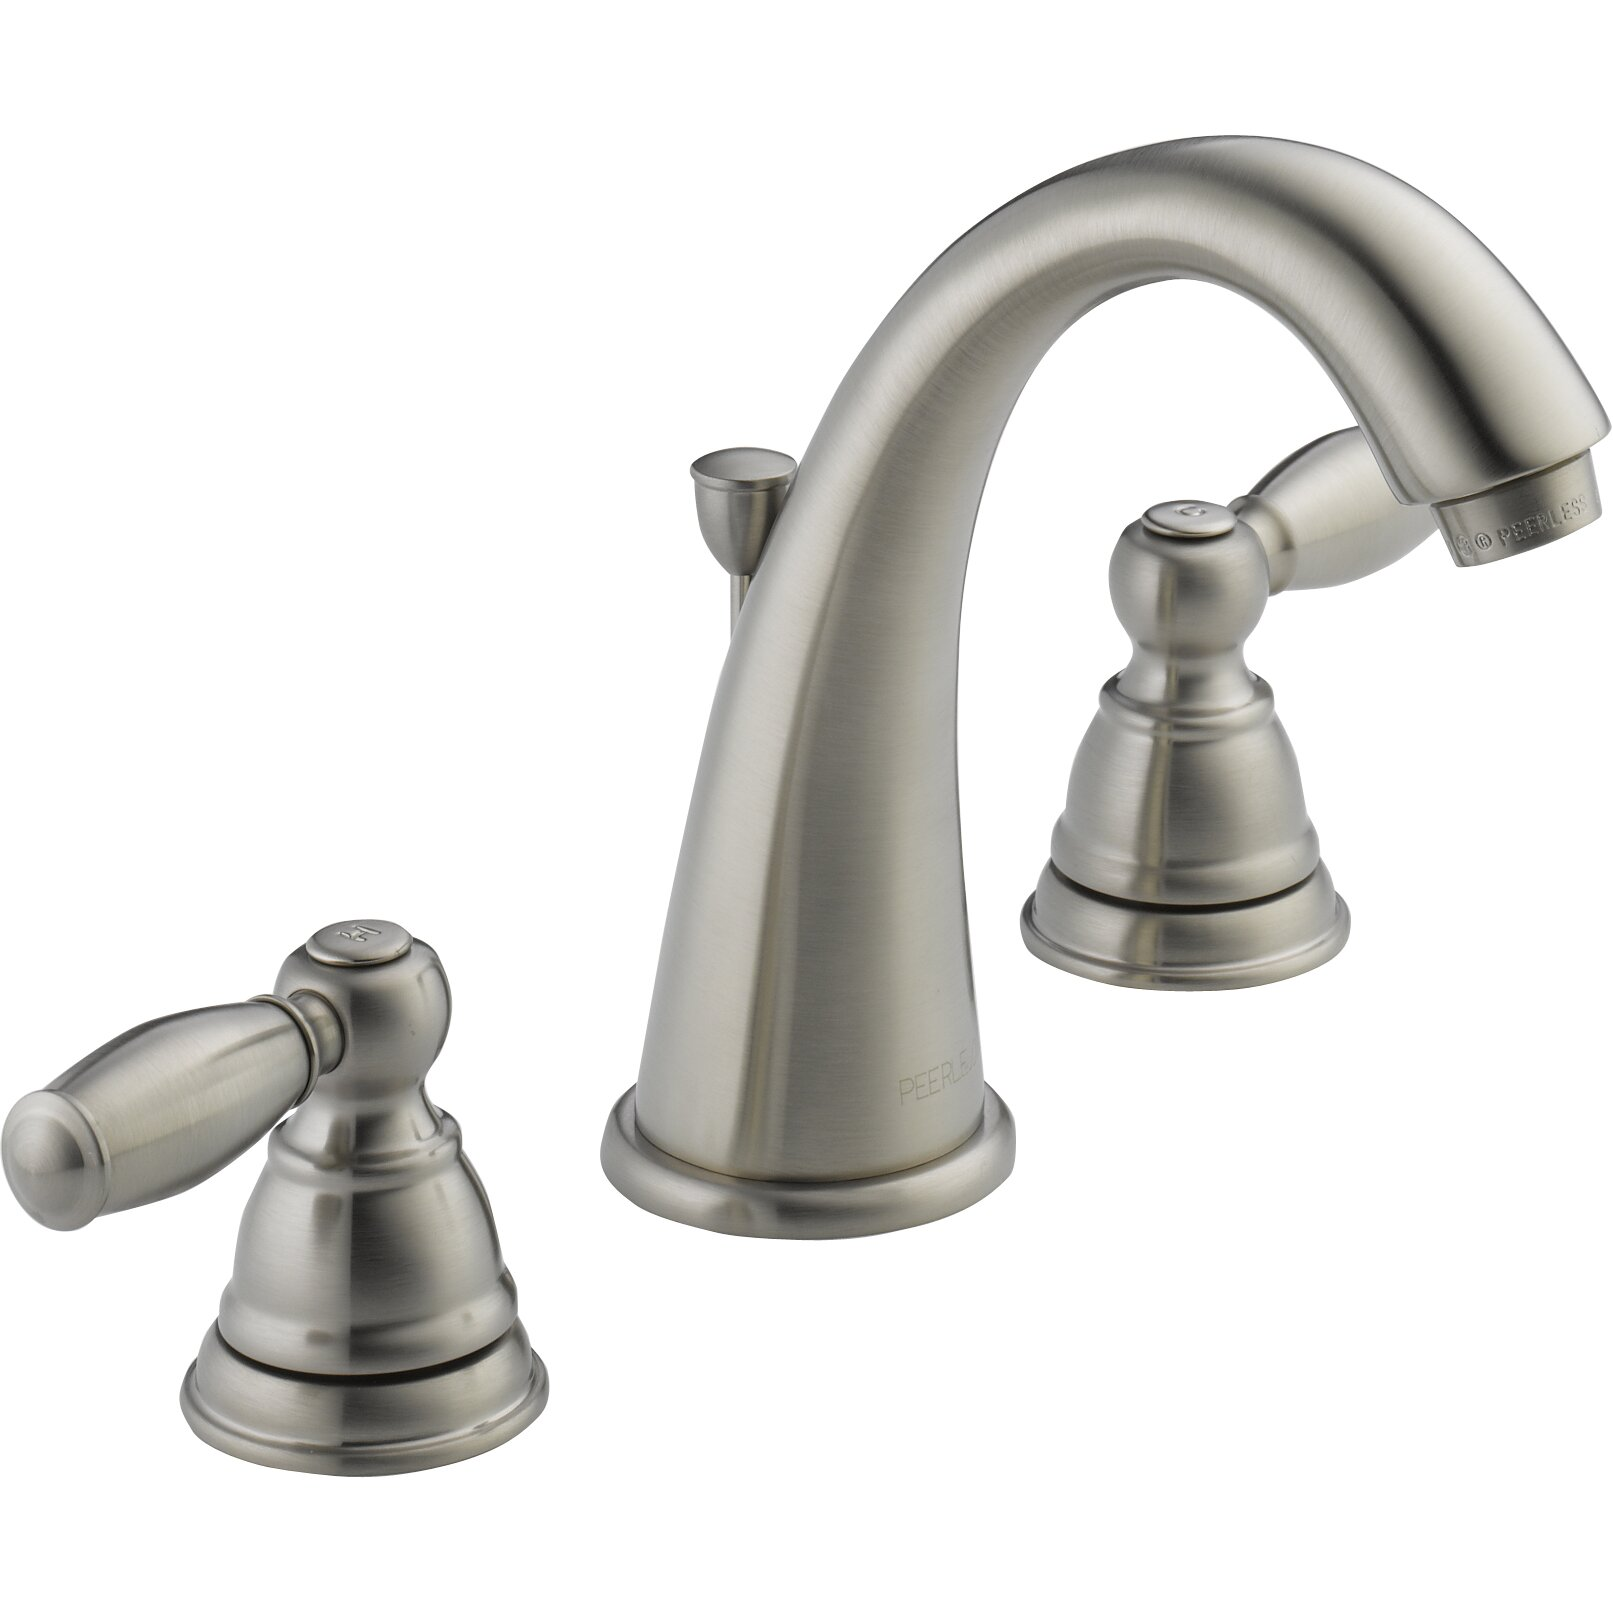 Widespread Bathroom Faucet With Double Handles Wayfair